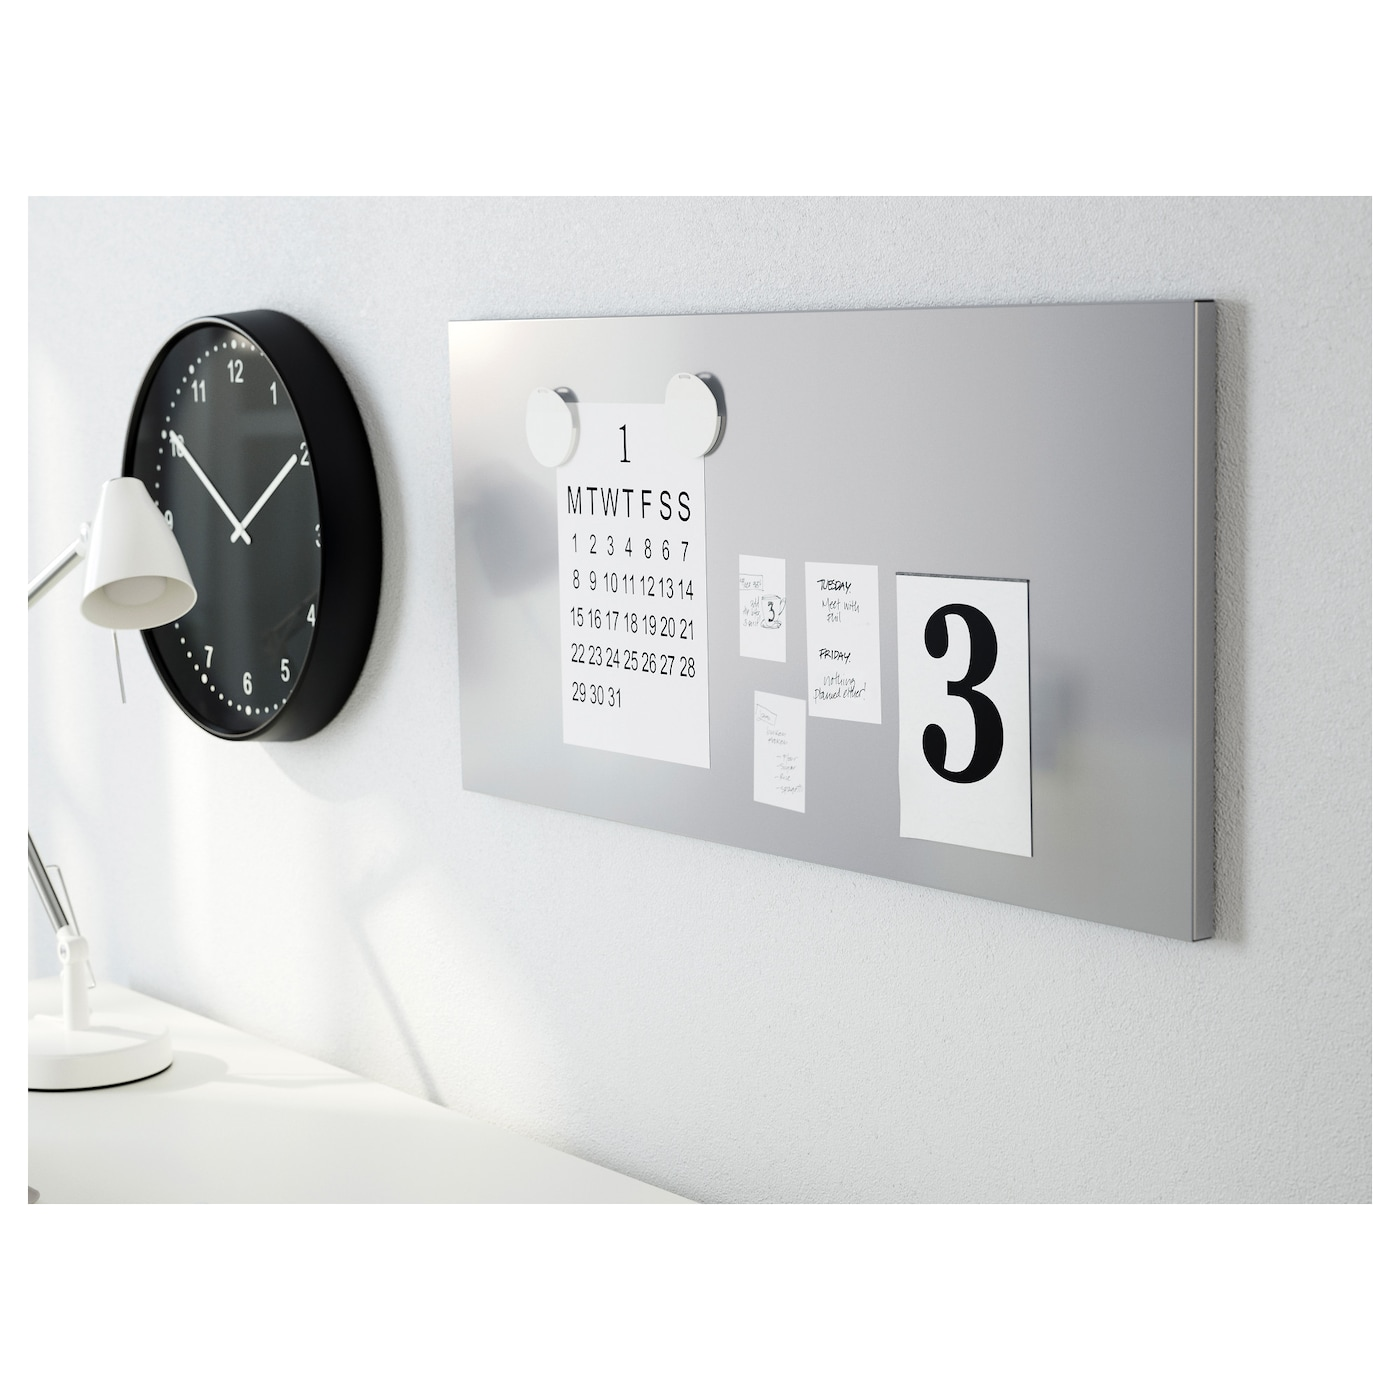 spontan magnetic board silver colour 37 x 78 cm ikea. Black Bedroom Furniture Sets. Home Design Ideas